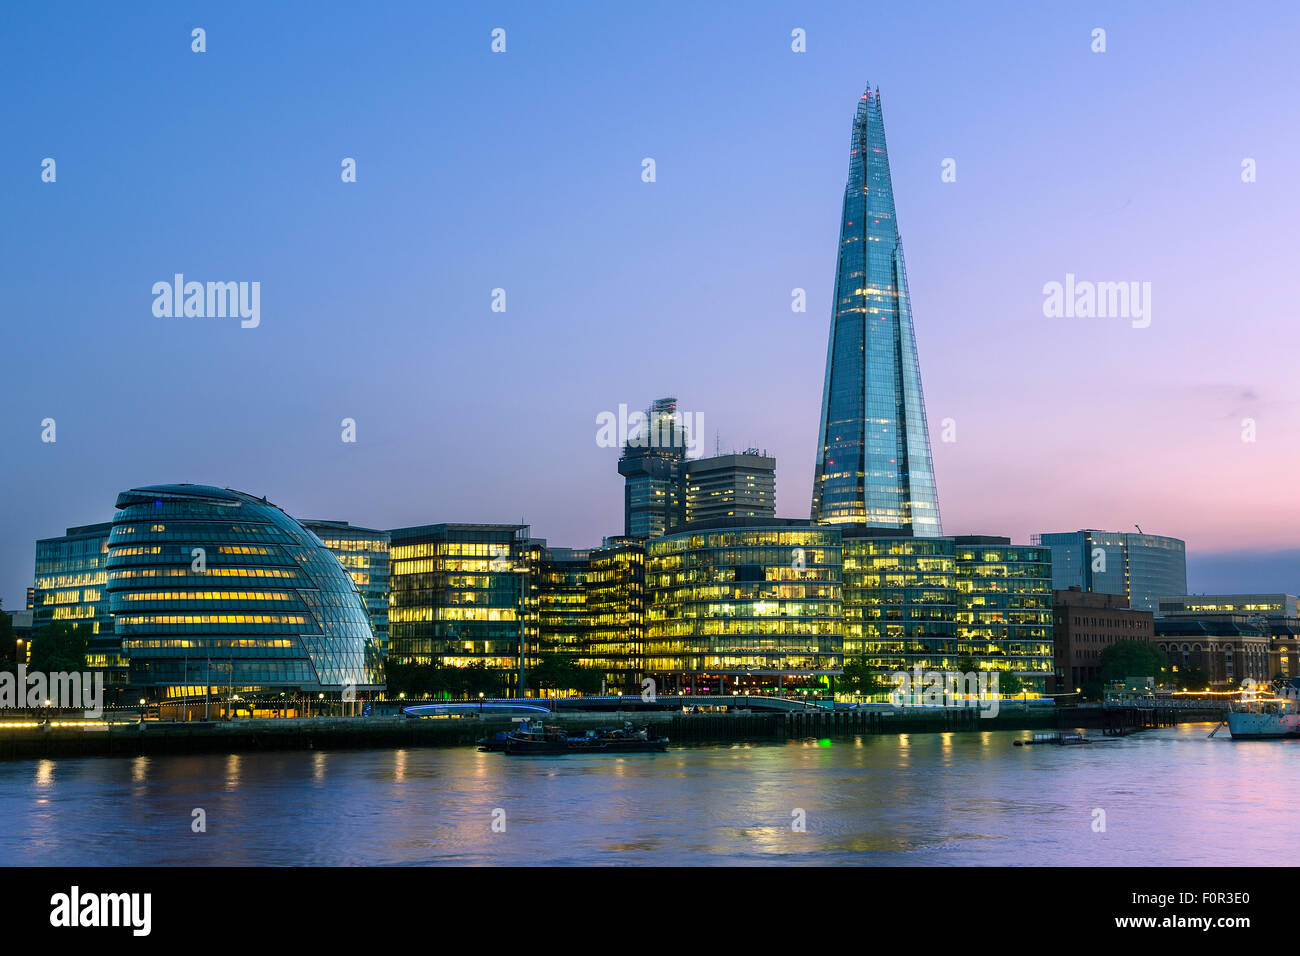 London, Shard London Bridge at Dusk - Stock Image